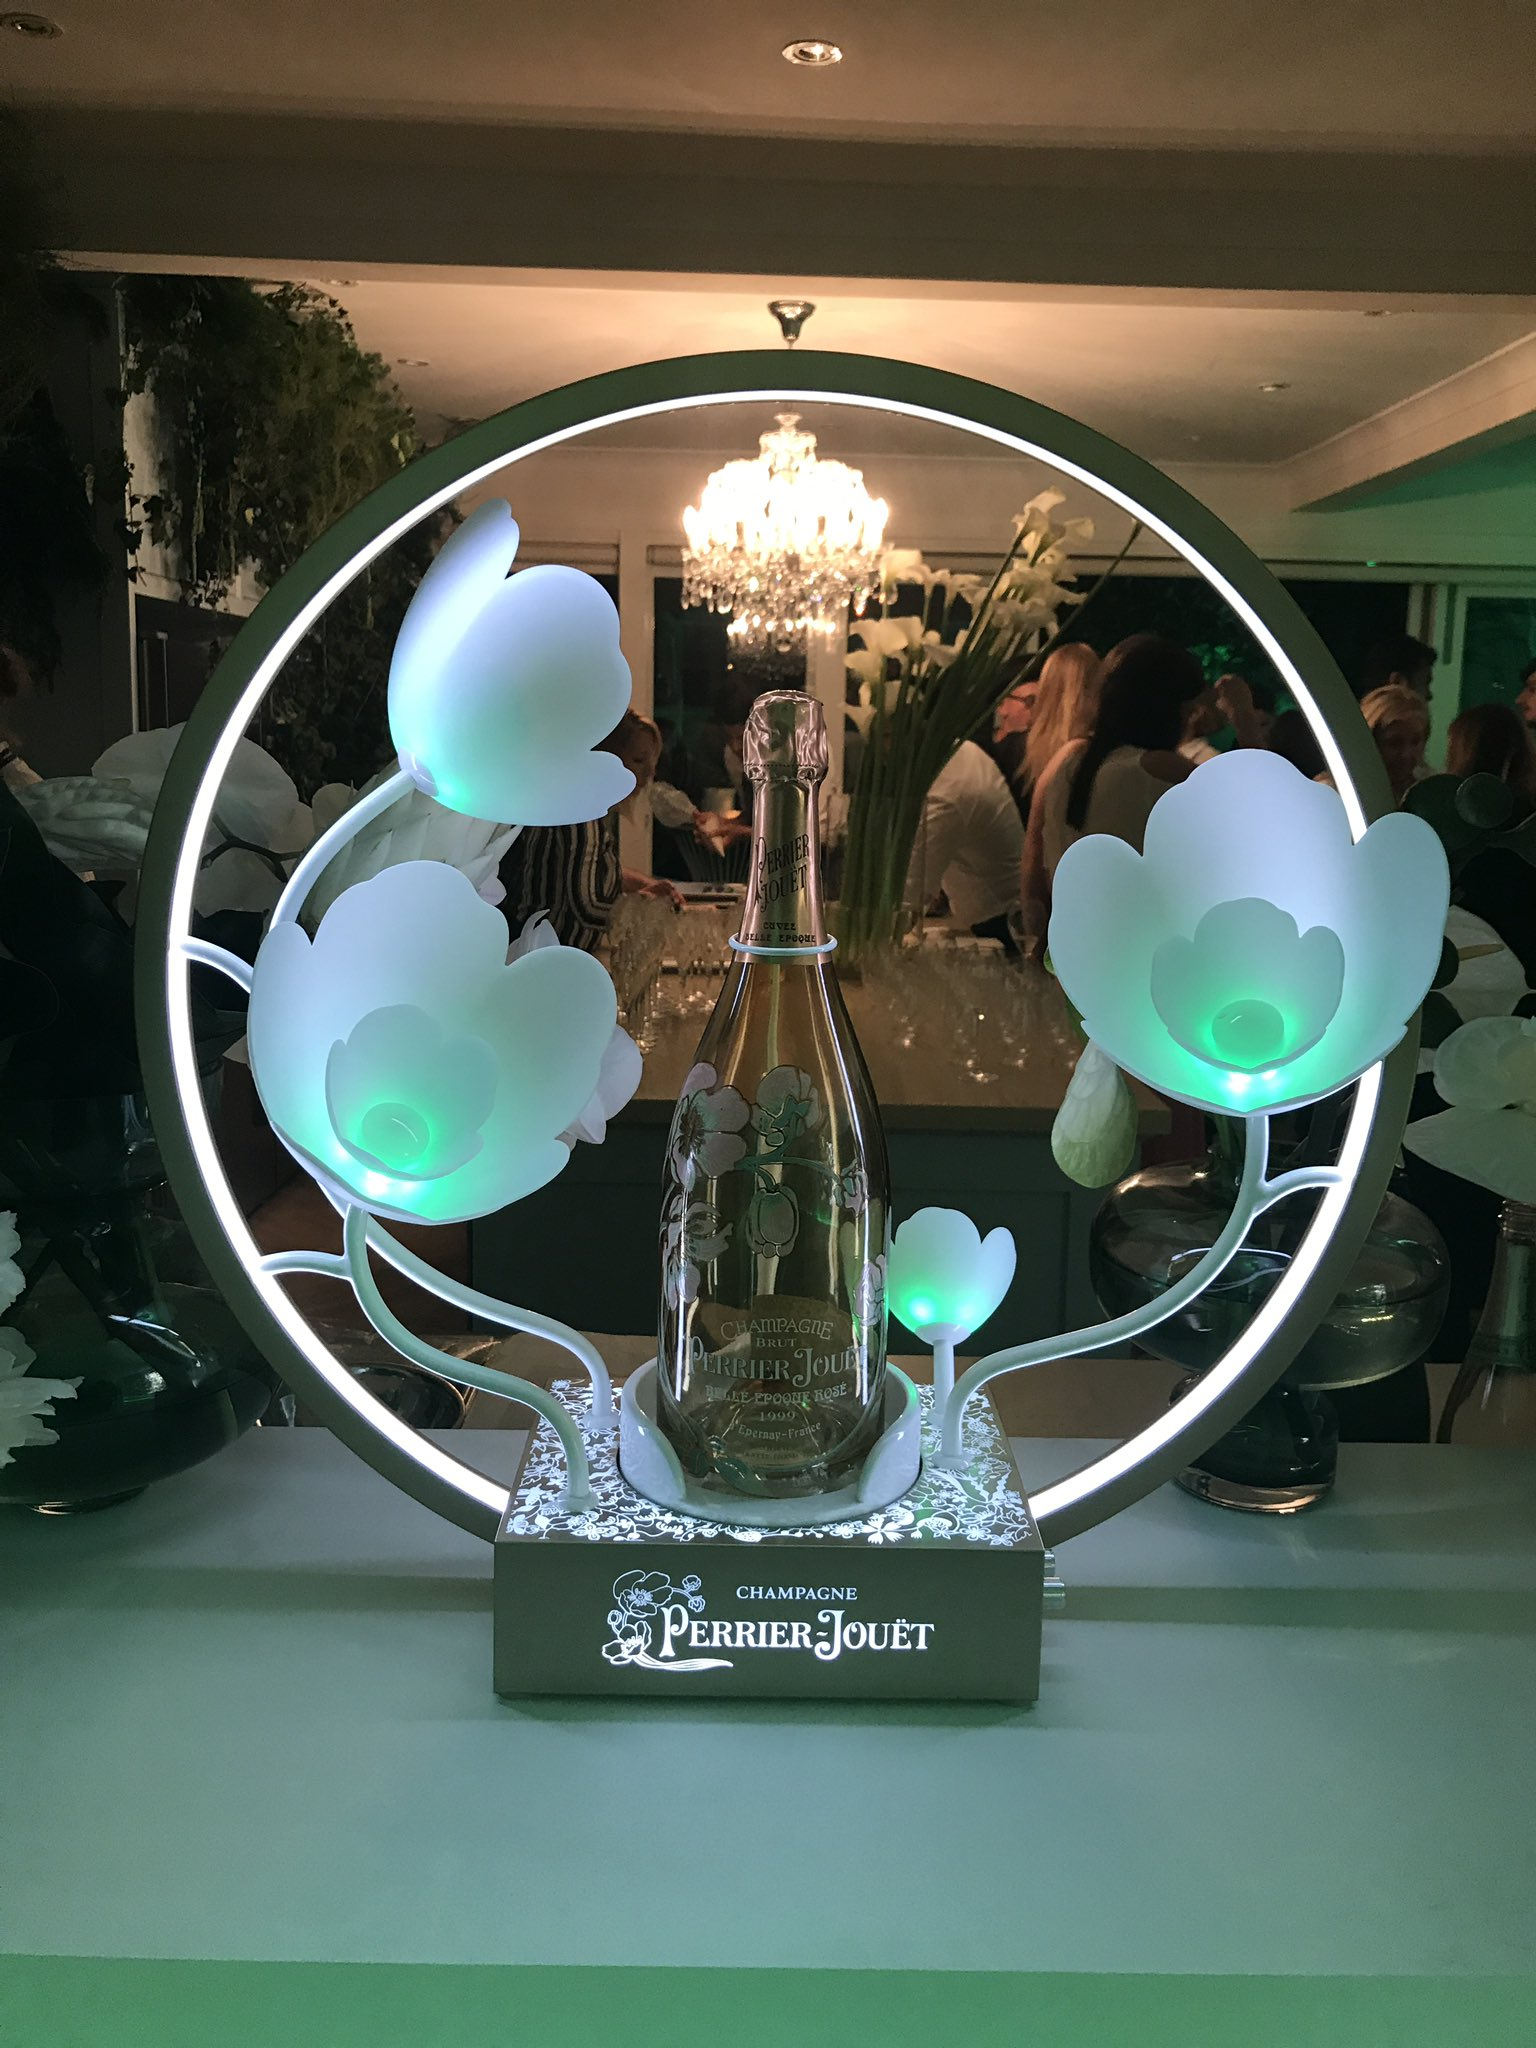 It's Friday.... @perrierjouet https://t.co/htb9hNxSG6